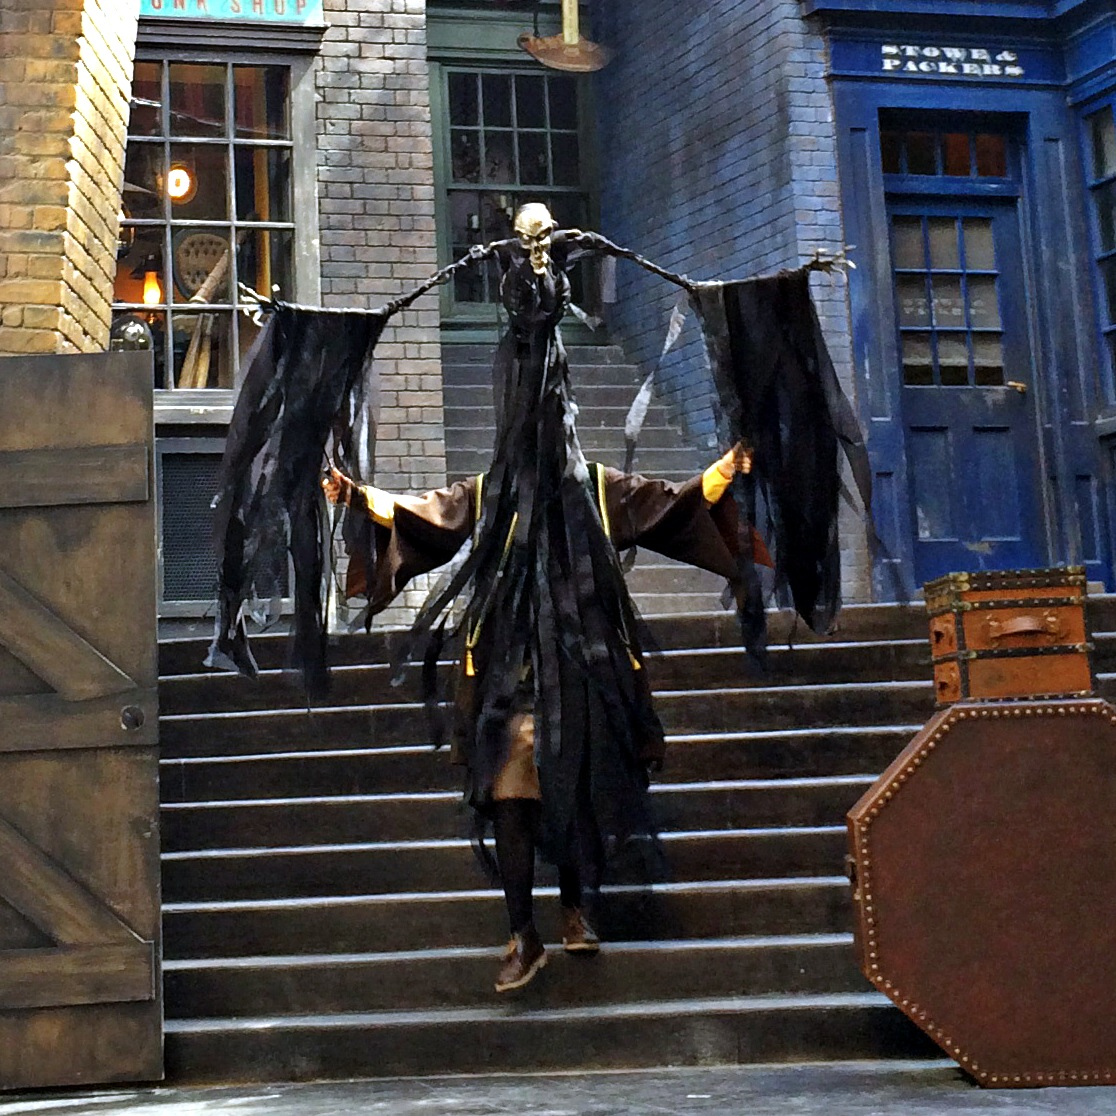 Diagon Alley The Tale of the Three Brothers -